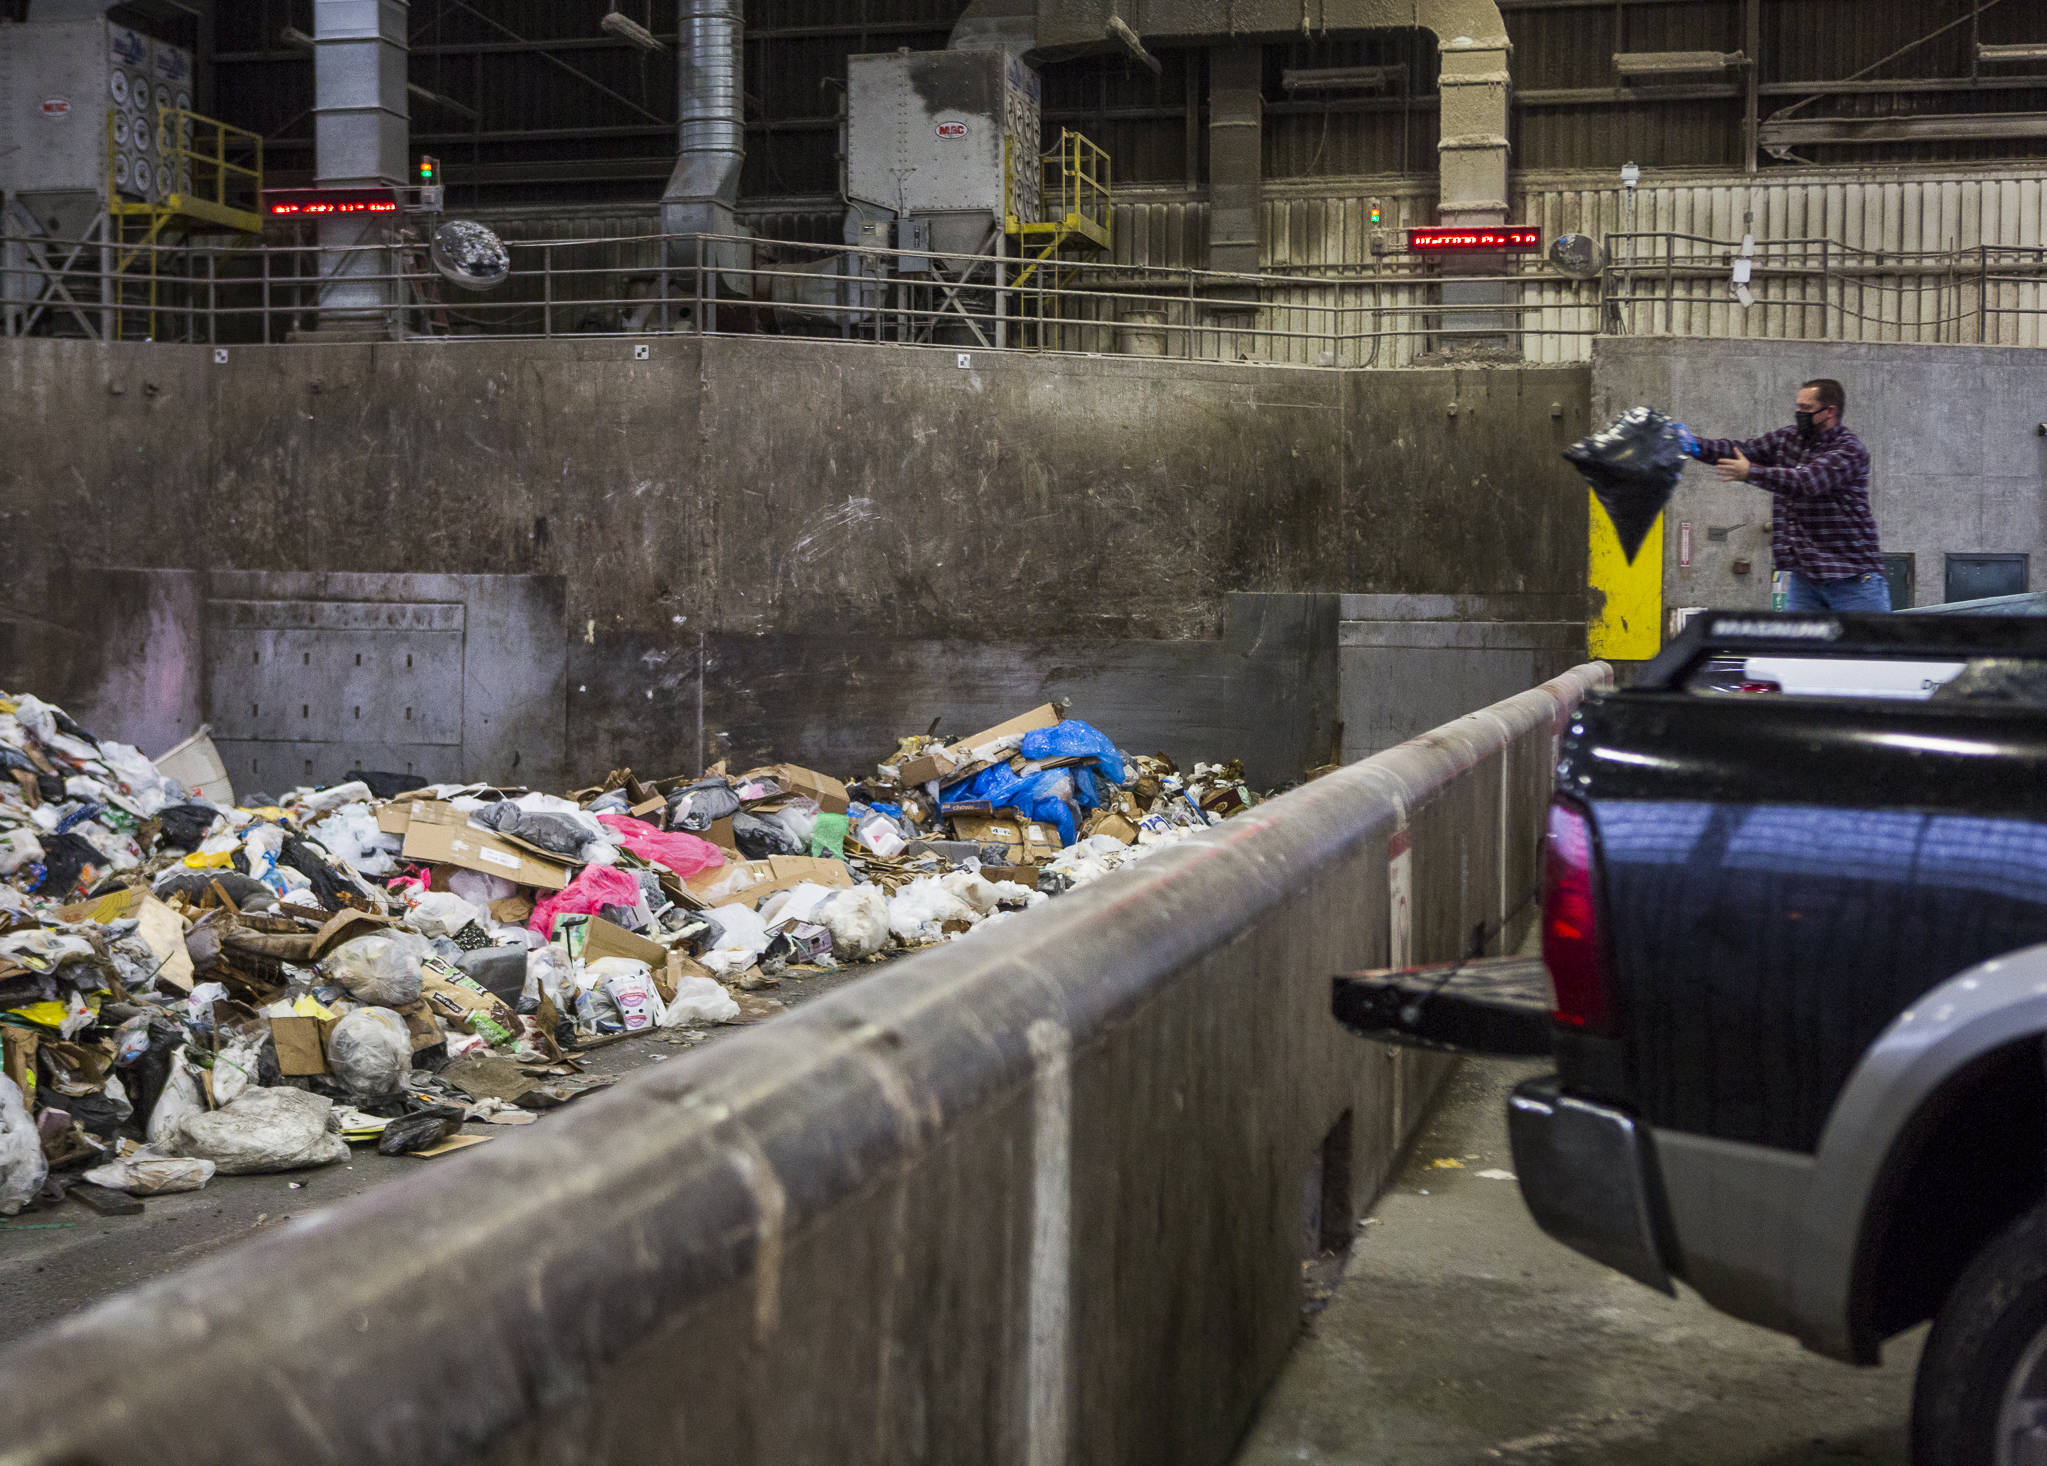 People throw their trash onto the tipping floor to be loaded into a compactor at the Airport Road Recycling & Transfer Station on Nov. 24 in Everett. Photo by Olivia Vanni/The Herald (Everett)